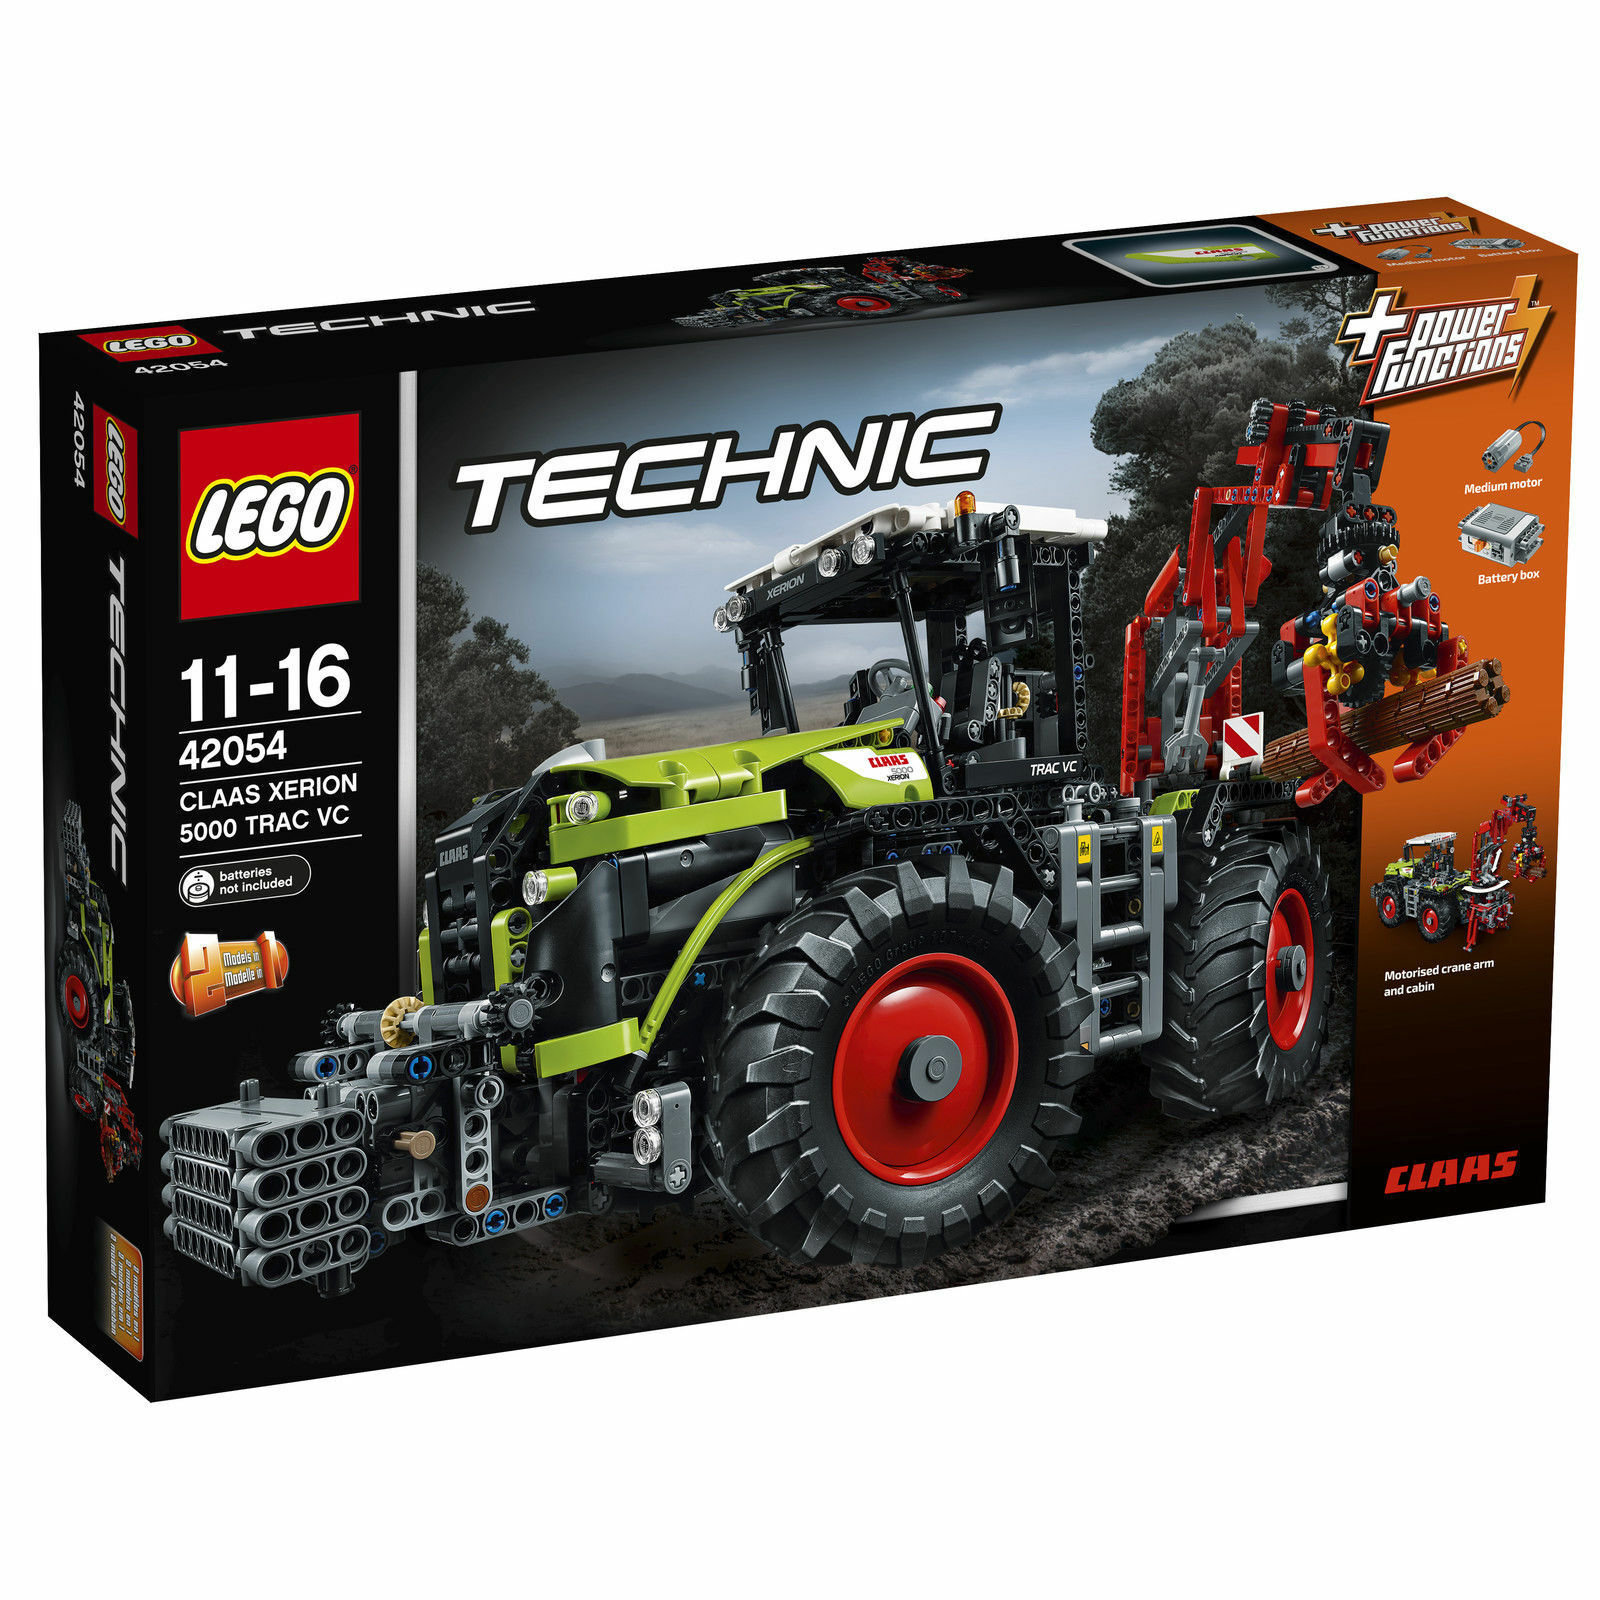 LEGO Technic Claas Xerion (42054) - Neu + OVP + Top